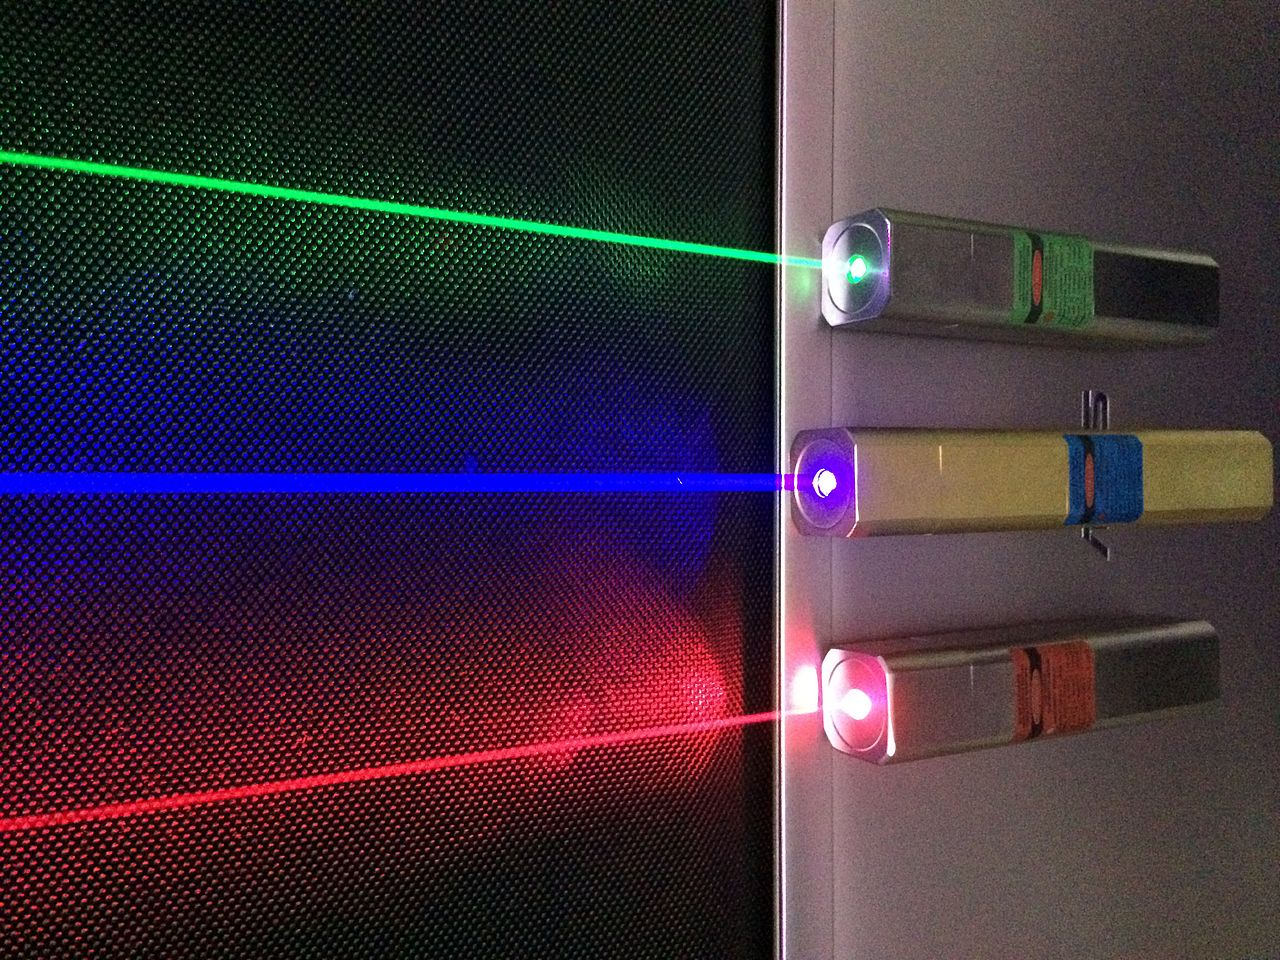 Scientists Are Adding 'Star Wars' Sound Effects To Real Lasers So They Can Hear Them